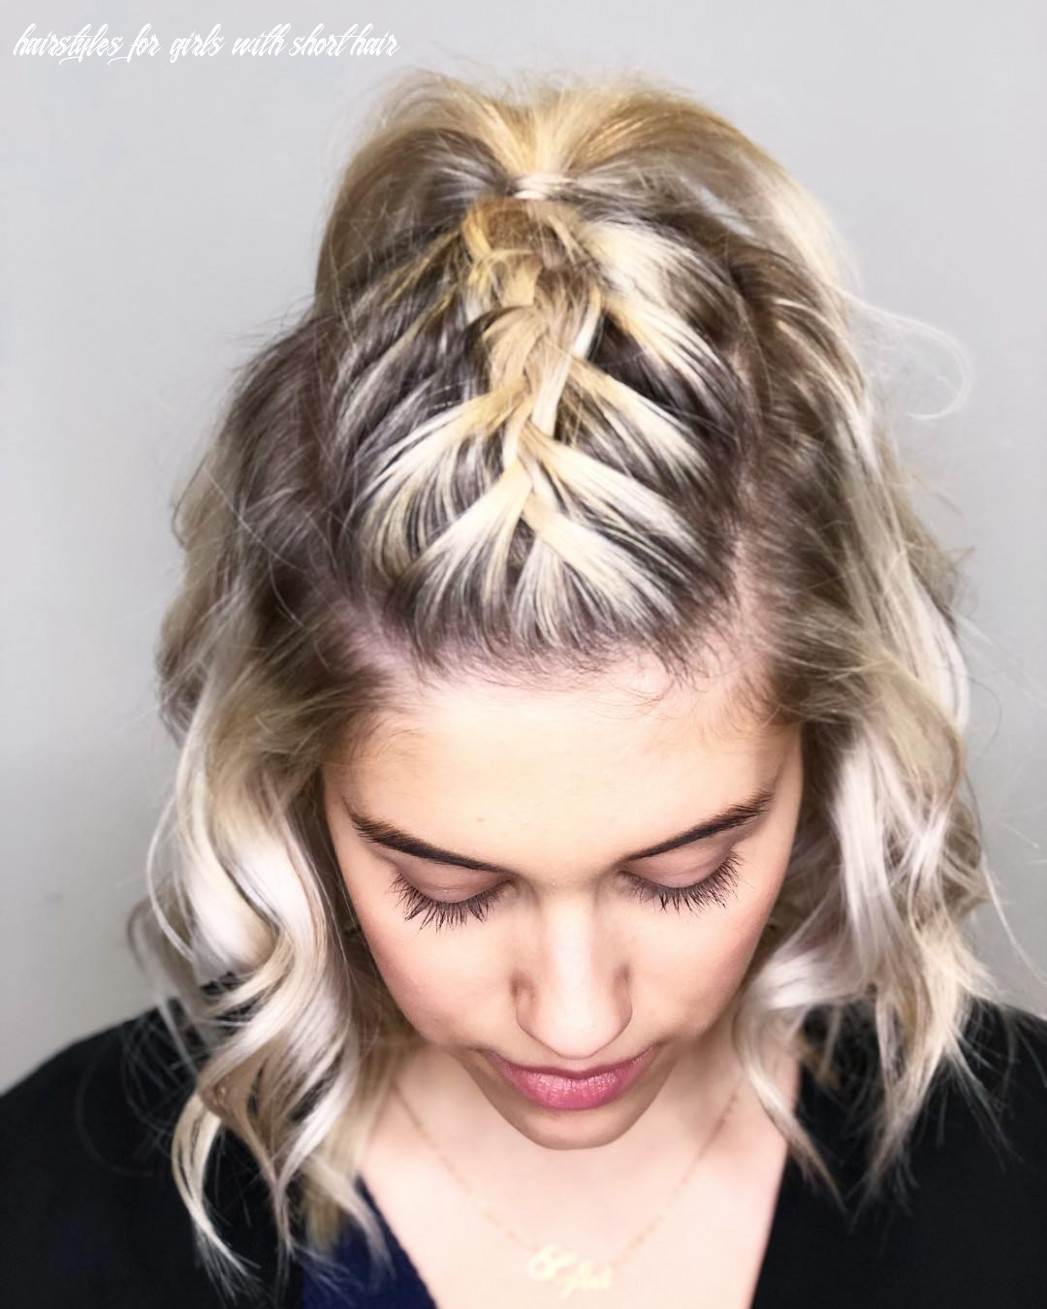 11 easy ways to style your hair hairstyles for short hair | meesho hairstyles for girls with short hair